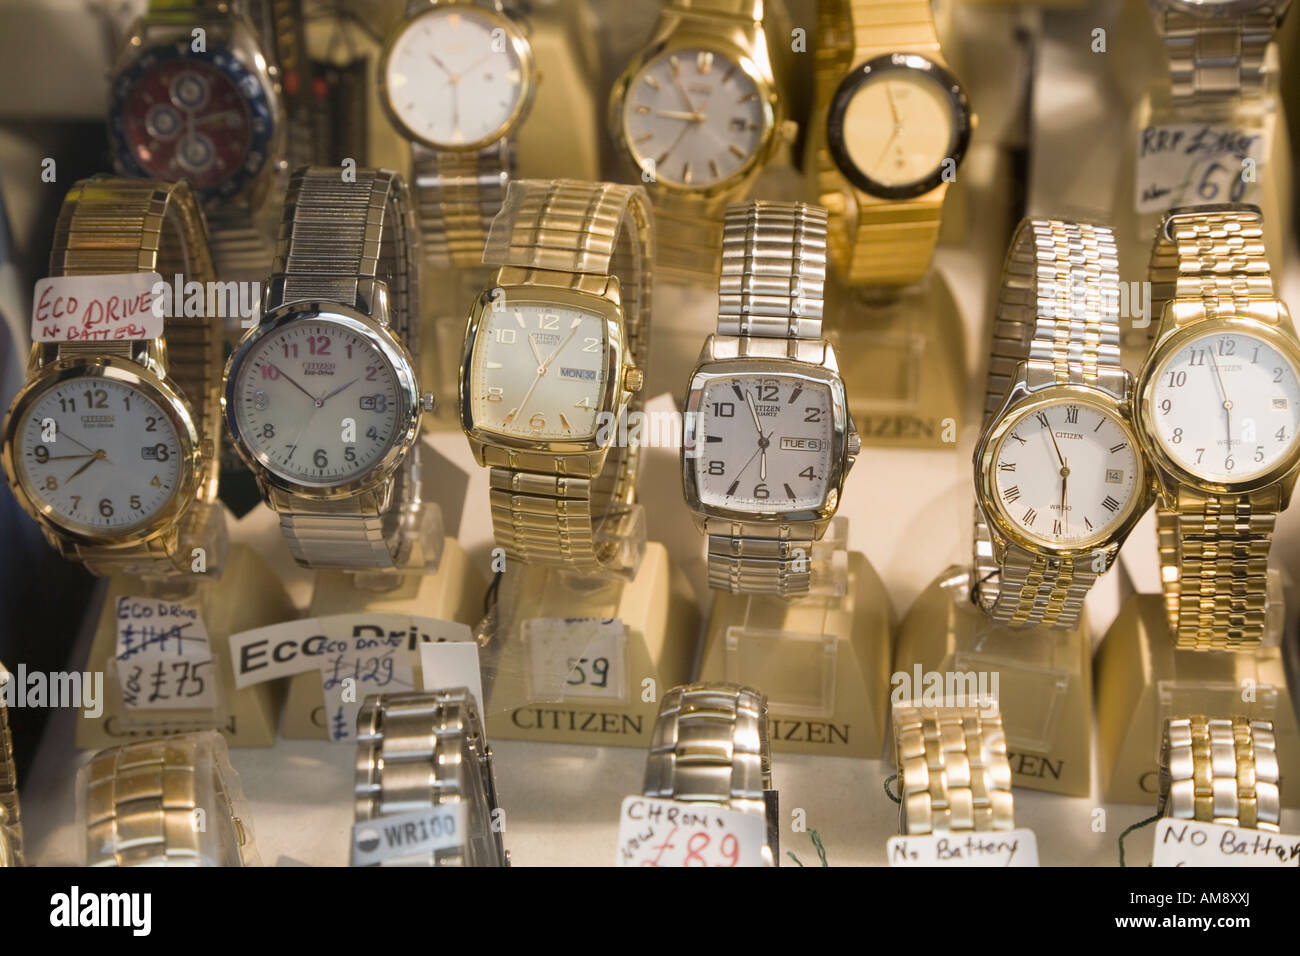 Gibraltar Watches for sale in shop window - Stock Image